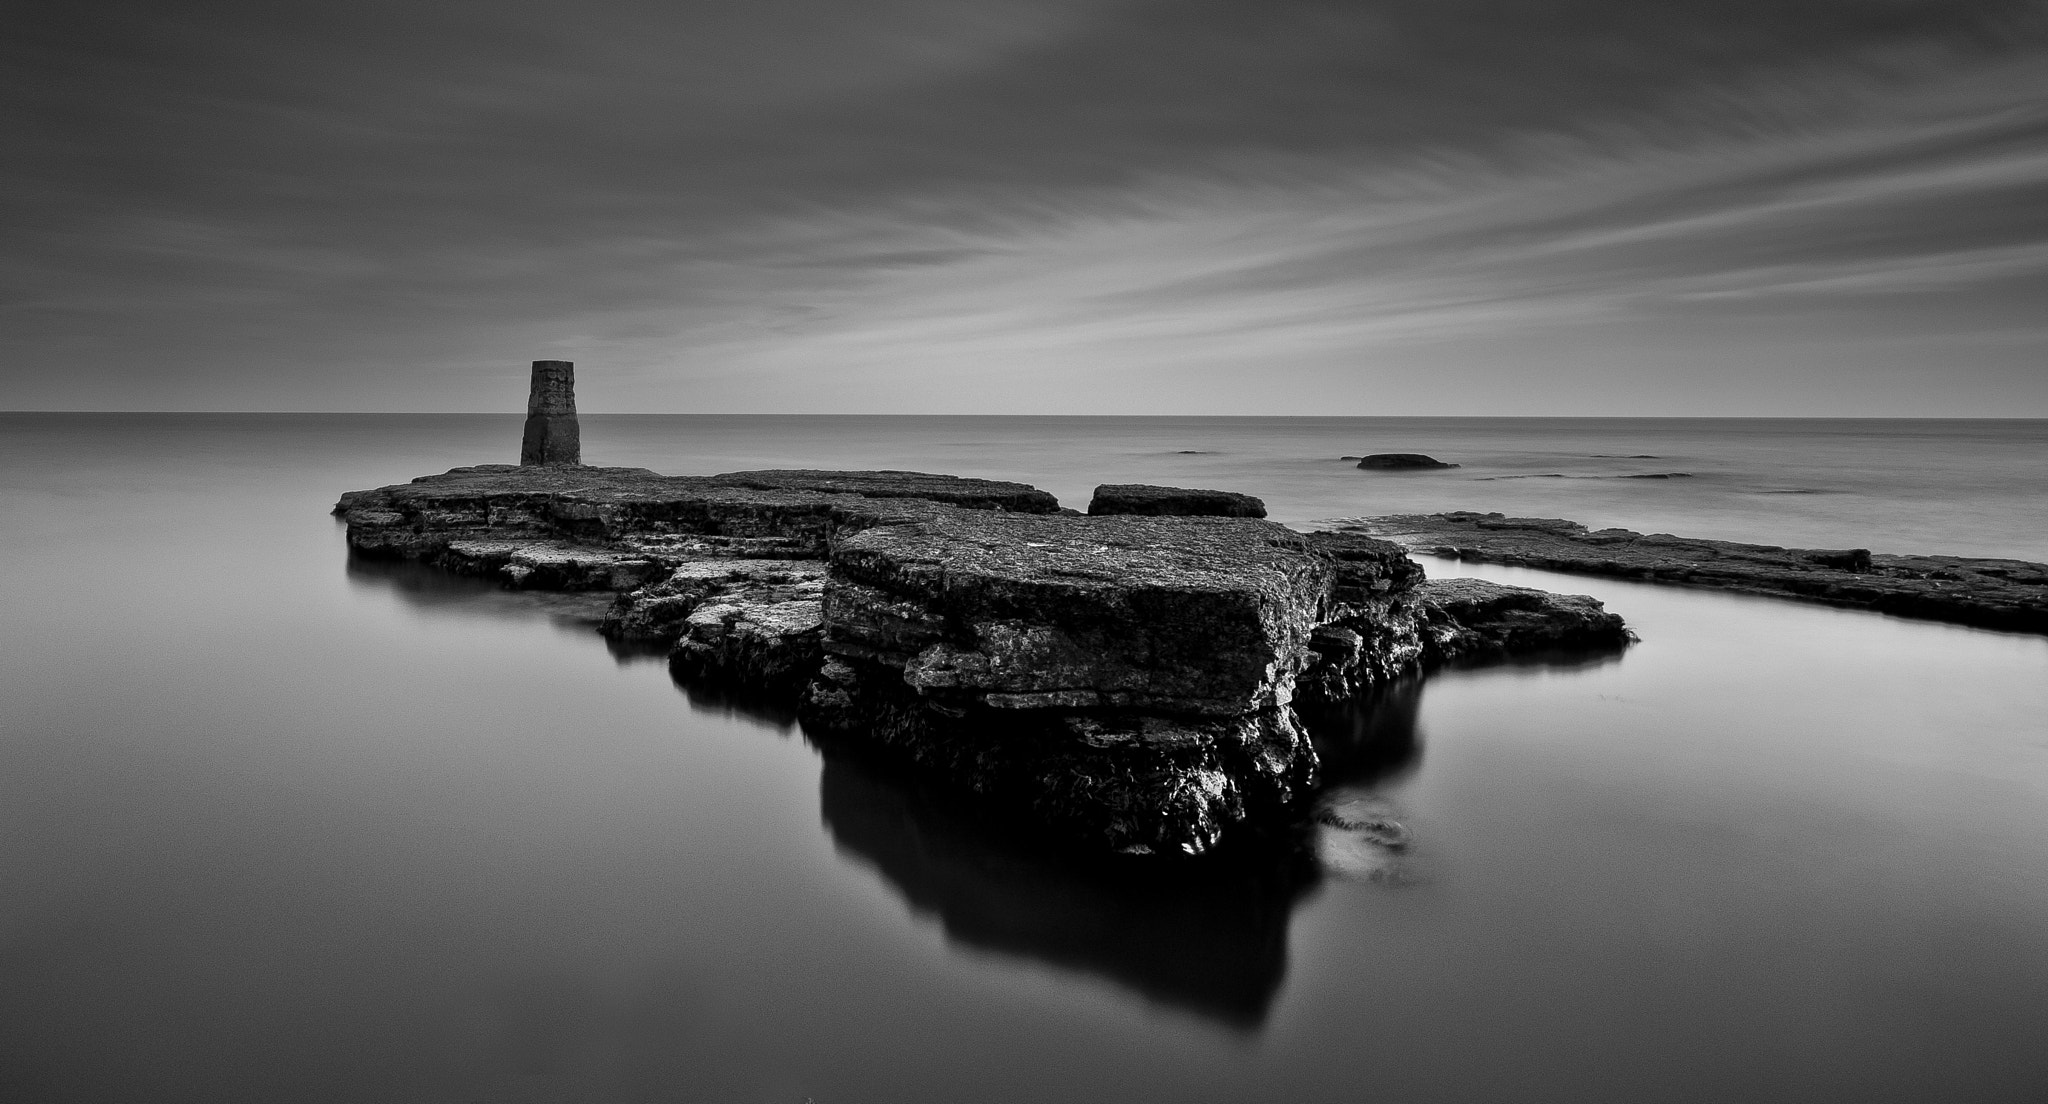 Photograph Souter Rangefinder by Phil Whittaker on 500px